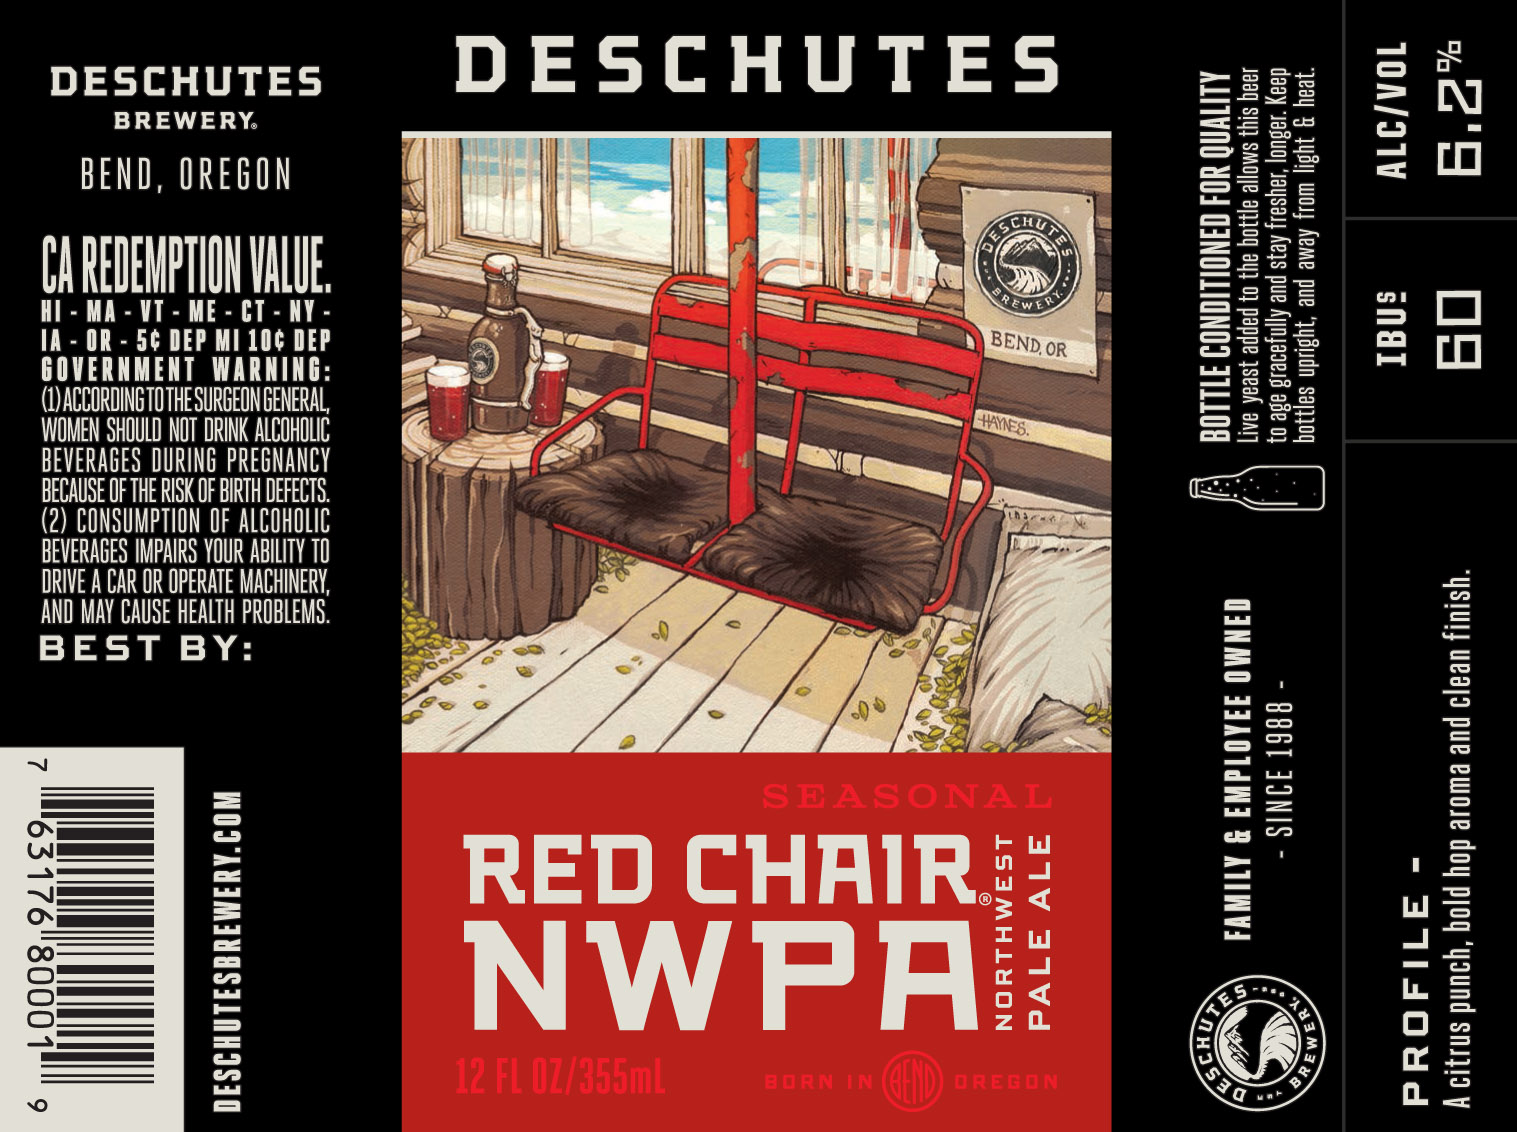 deschutes red chair high back sling patio chairs new oregon and washington craft beer labels submitted to ttb